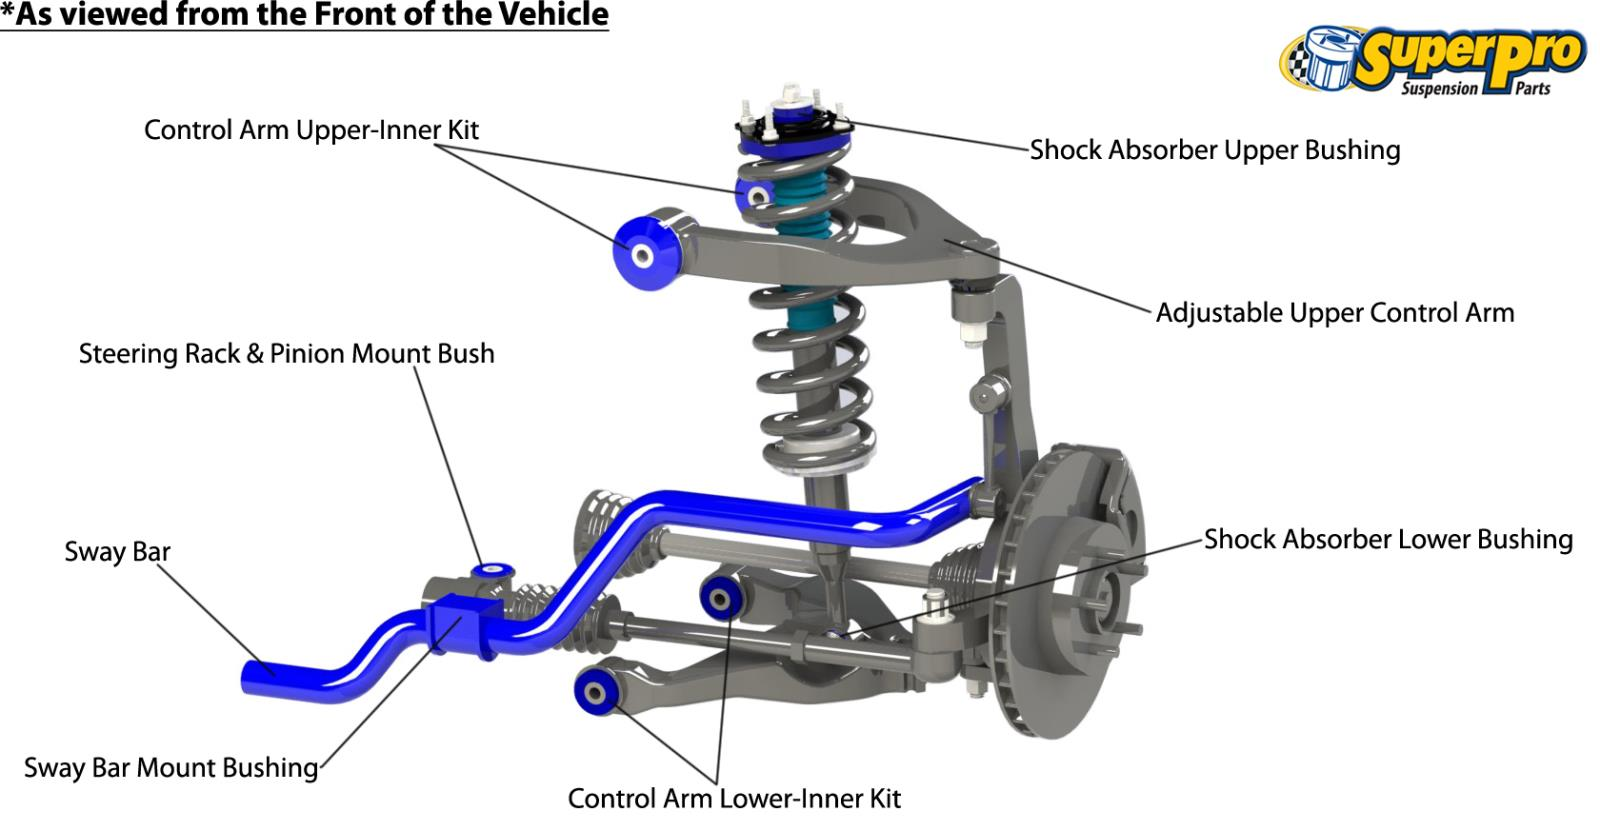 Front suspension diagram for TOYOTA FJ CRUISER 08/2009-on - GJS15